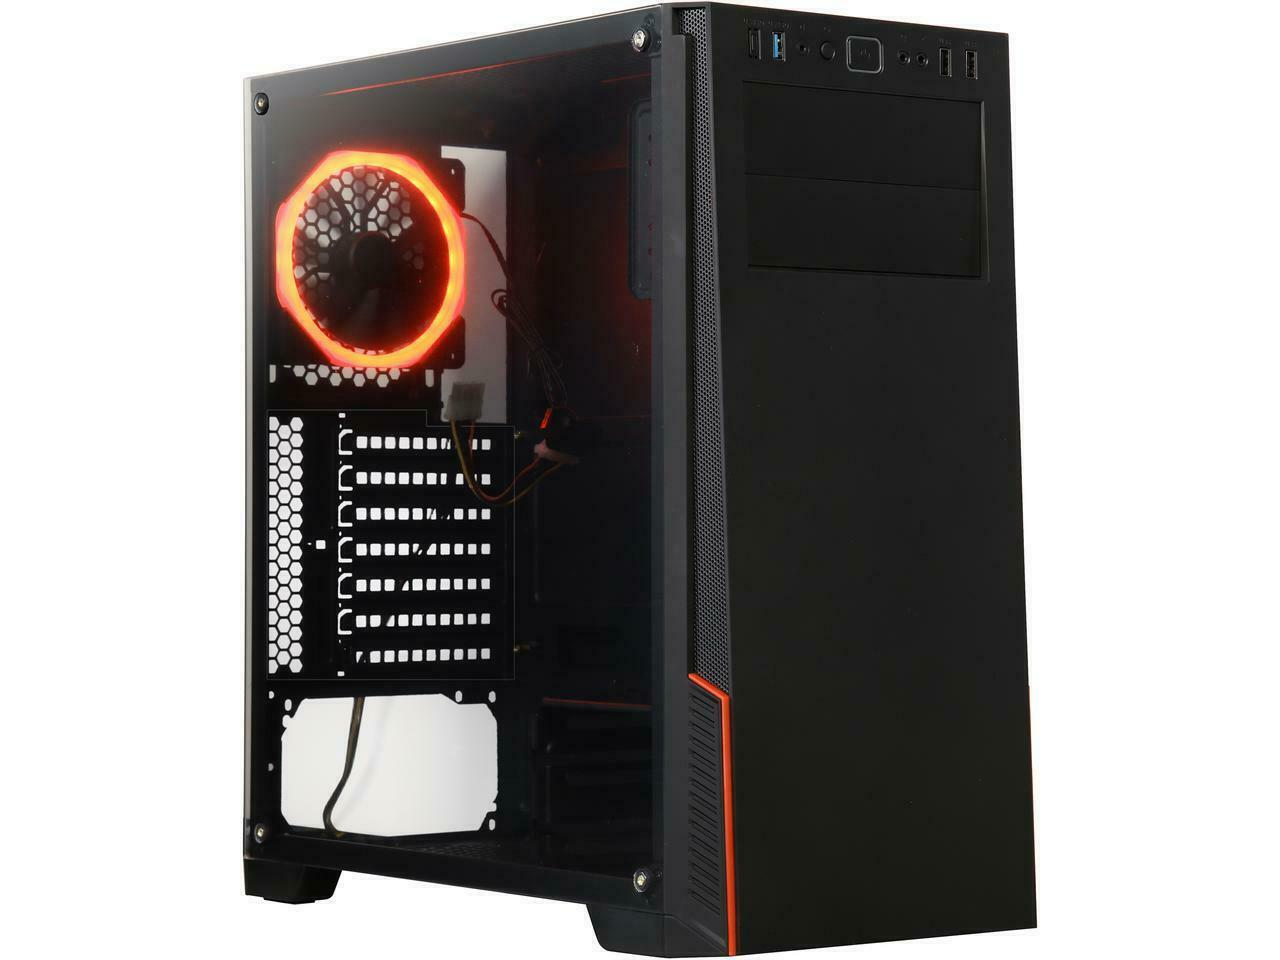 Pre Built Gaming Computer 4 GHZ AMD Ryzen 8GB RAM Desktop 240 GB SSD DVD WIFI